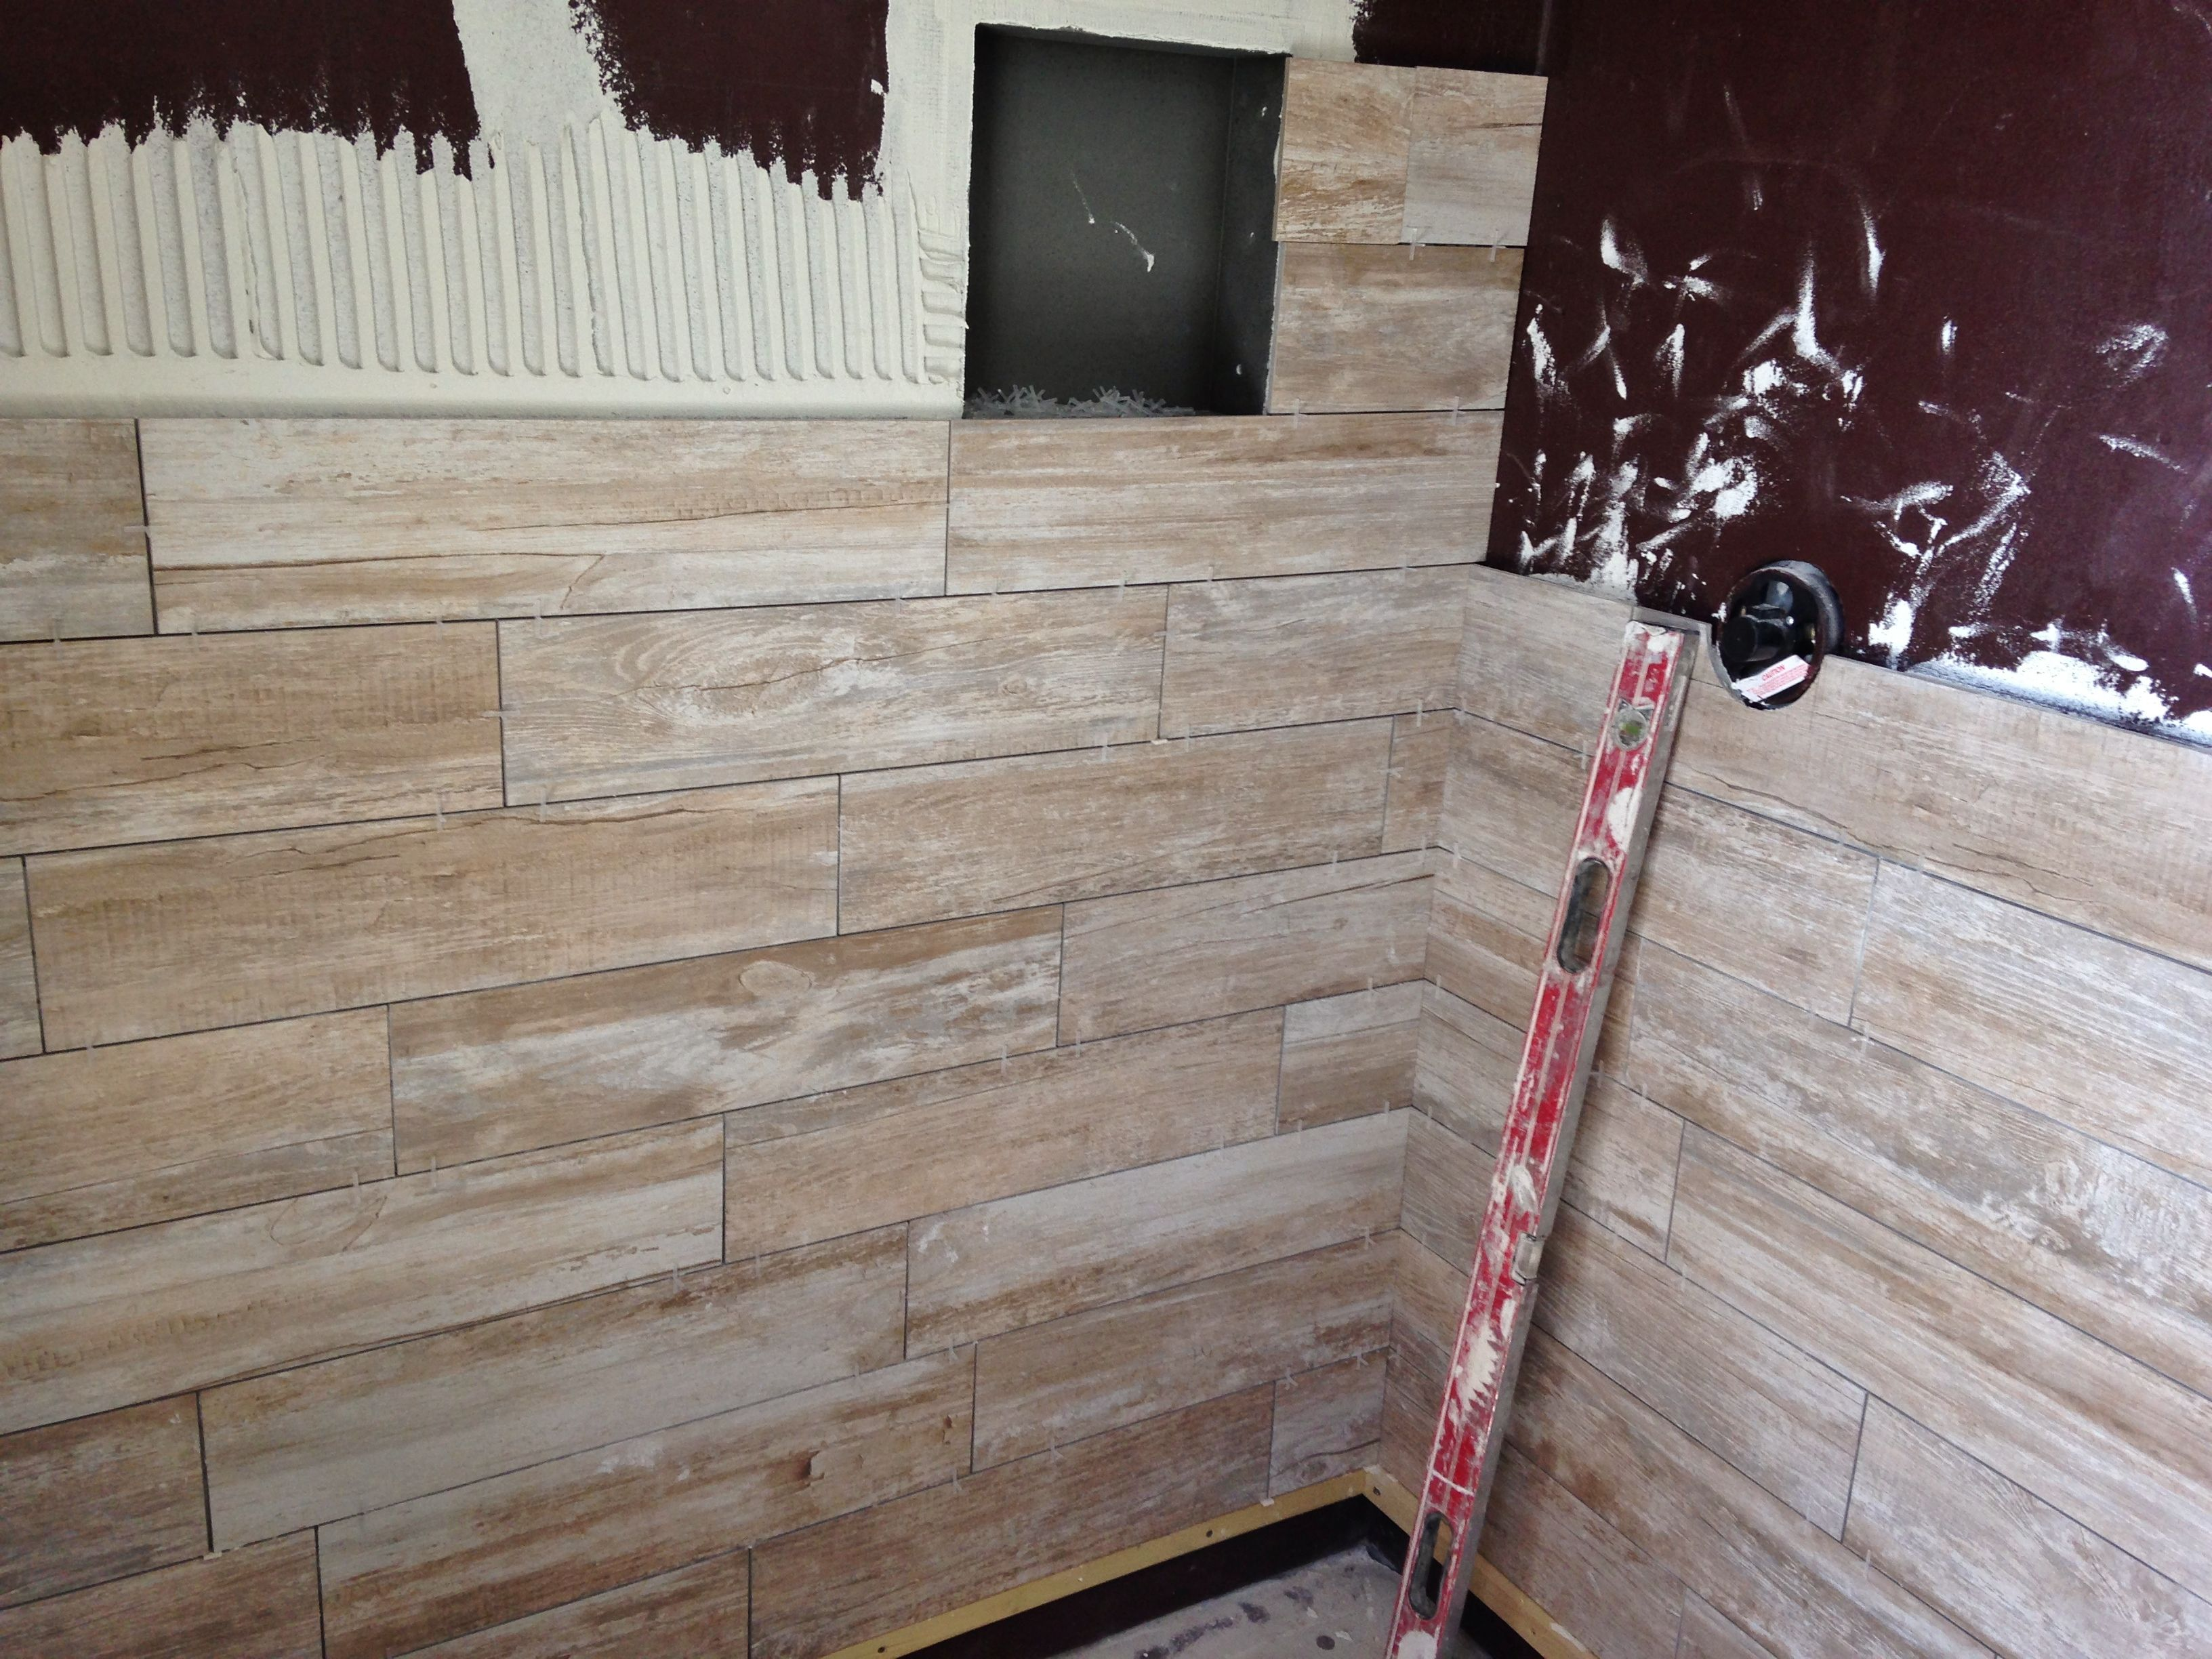 in progress 6x24 porcelain wood plank tile on shower walls tile jobs we 39 ve done charleston. Black Bedroom Furniture Sets. Home Design Ideas